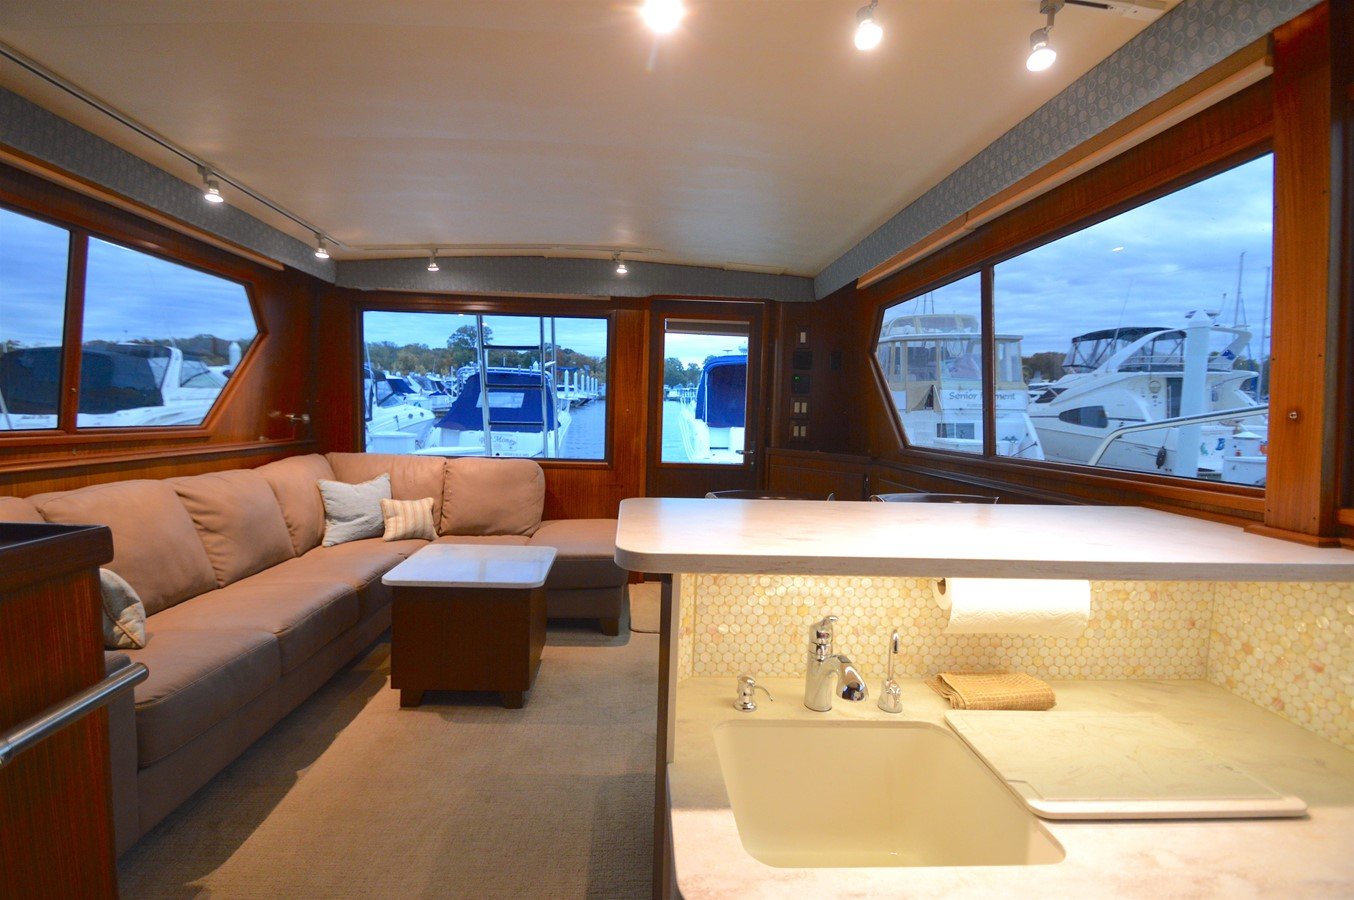 14 - 48 HATTERAS For Sale